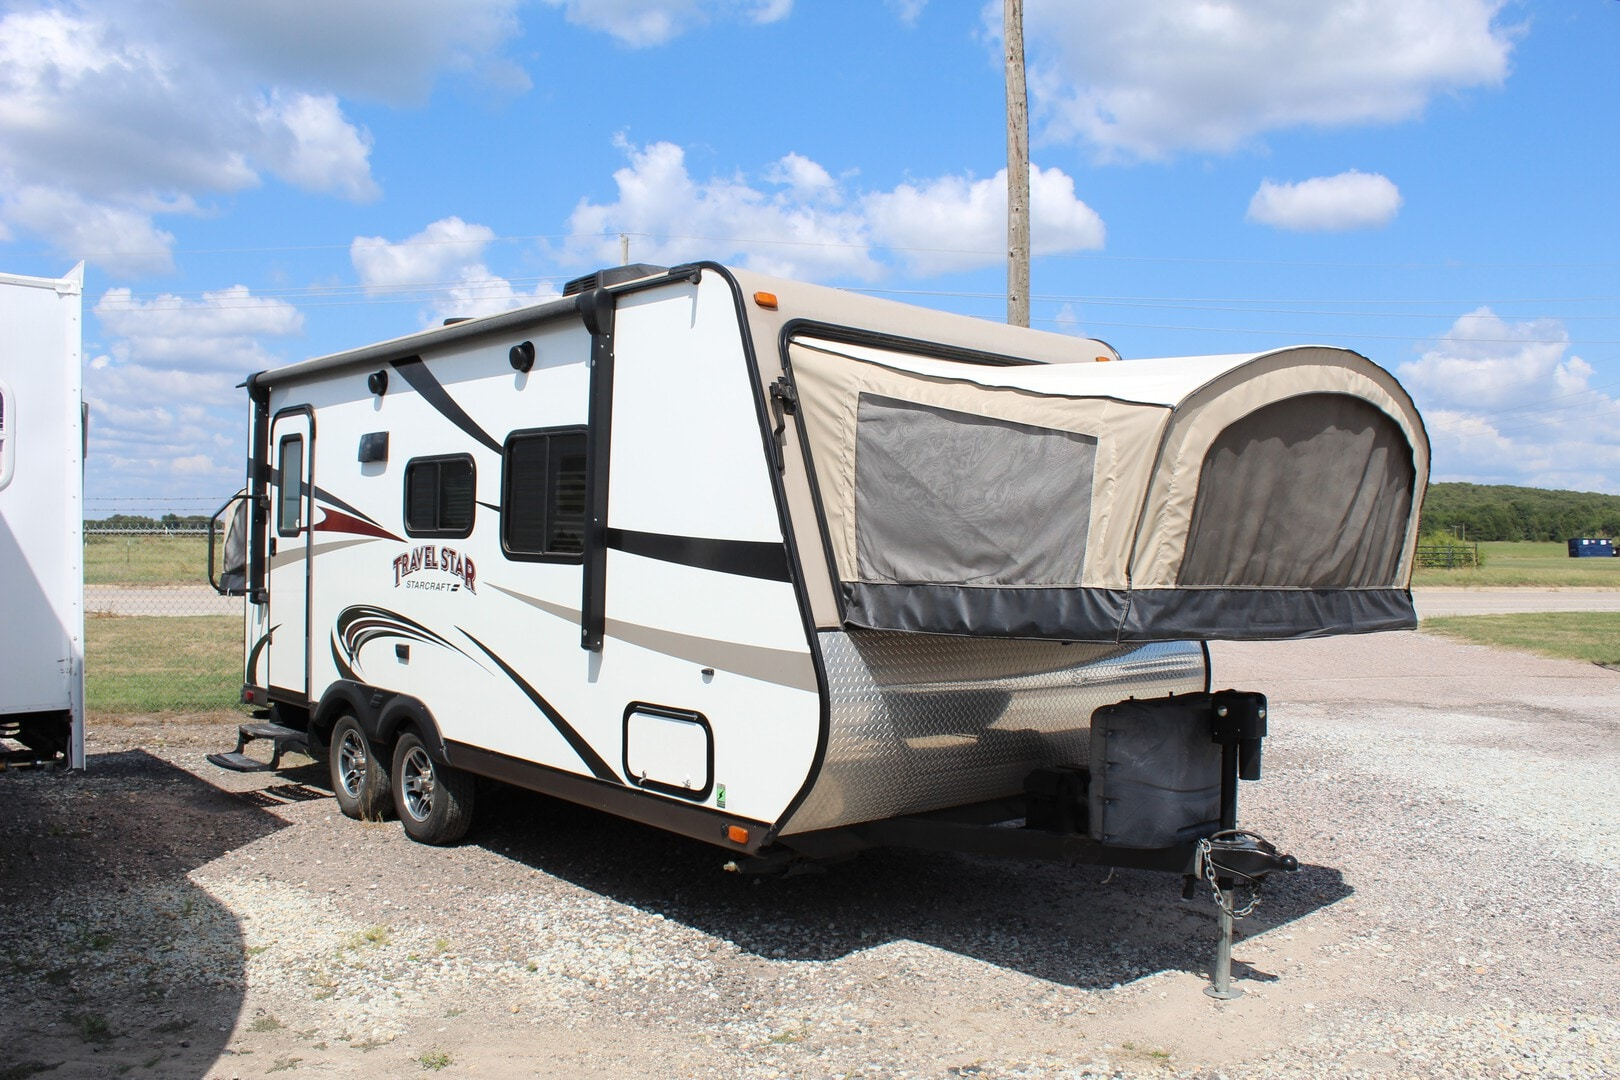 Used, 2016, Starcraft, Travel Star® Expandable 207RB, Travel Trailers